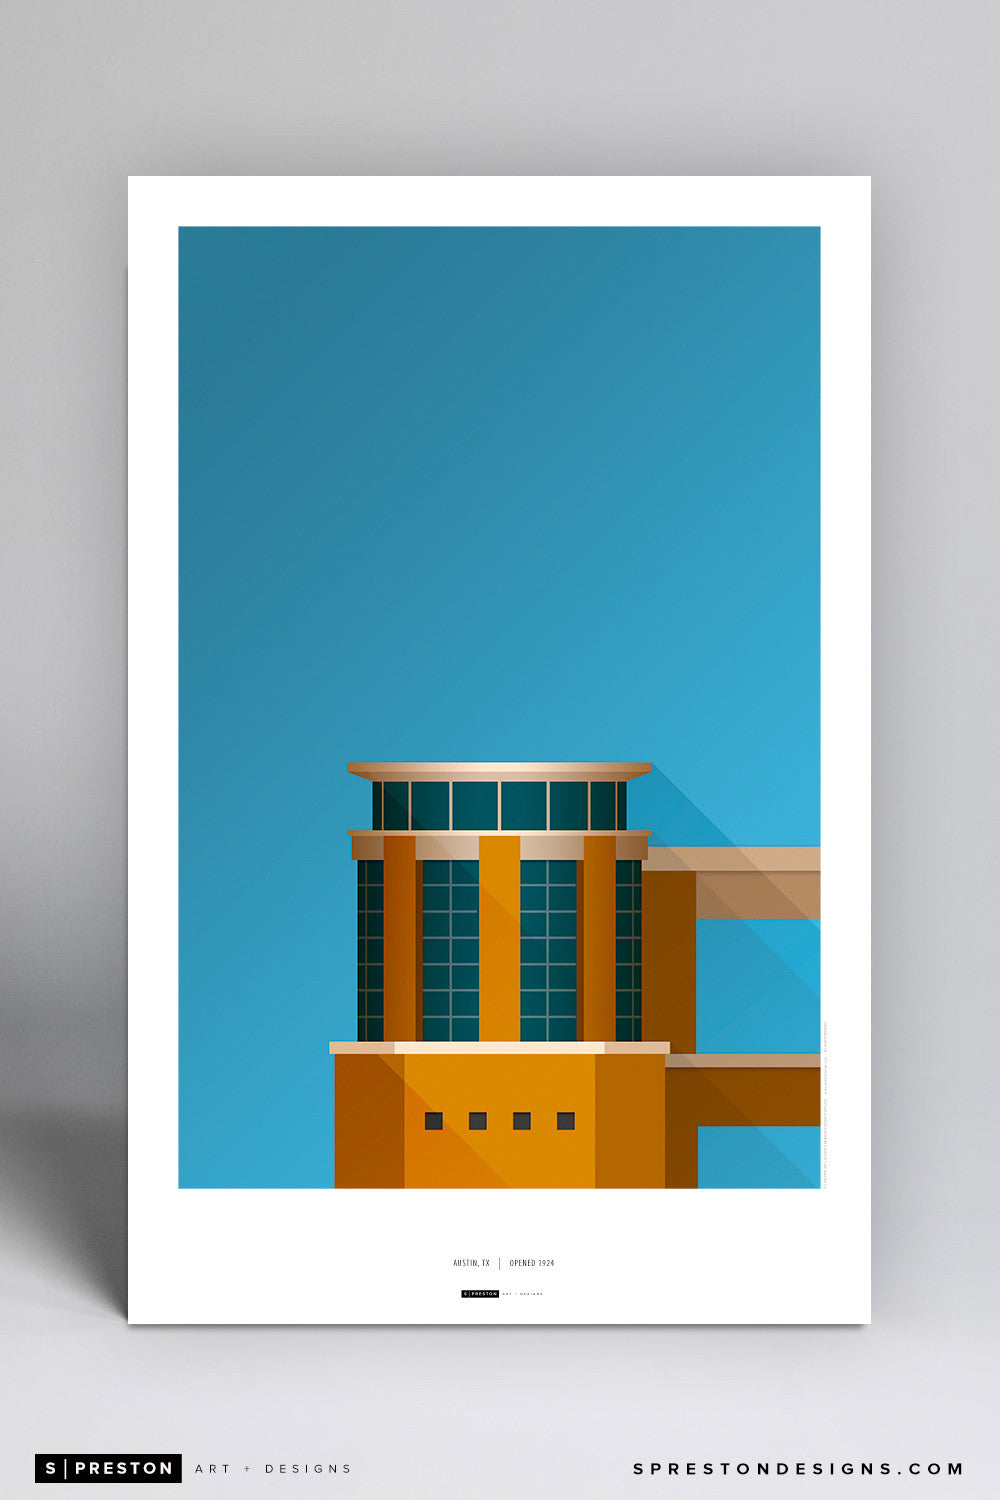 Minimalist Darrell K Royal Texas Memorial Stadium Poster Print University of Texas - S Preston